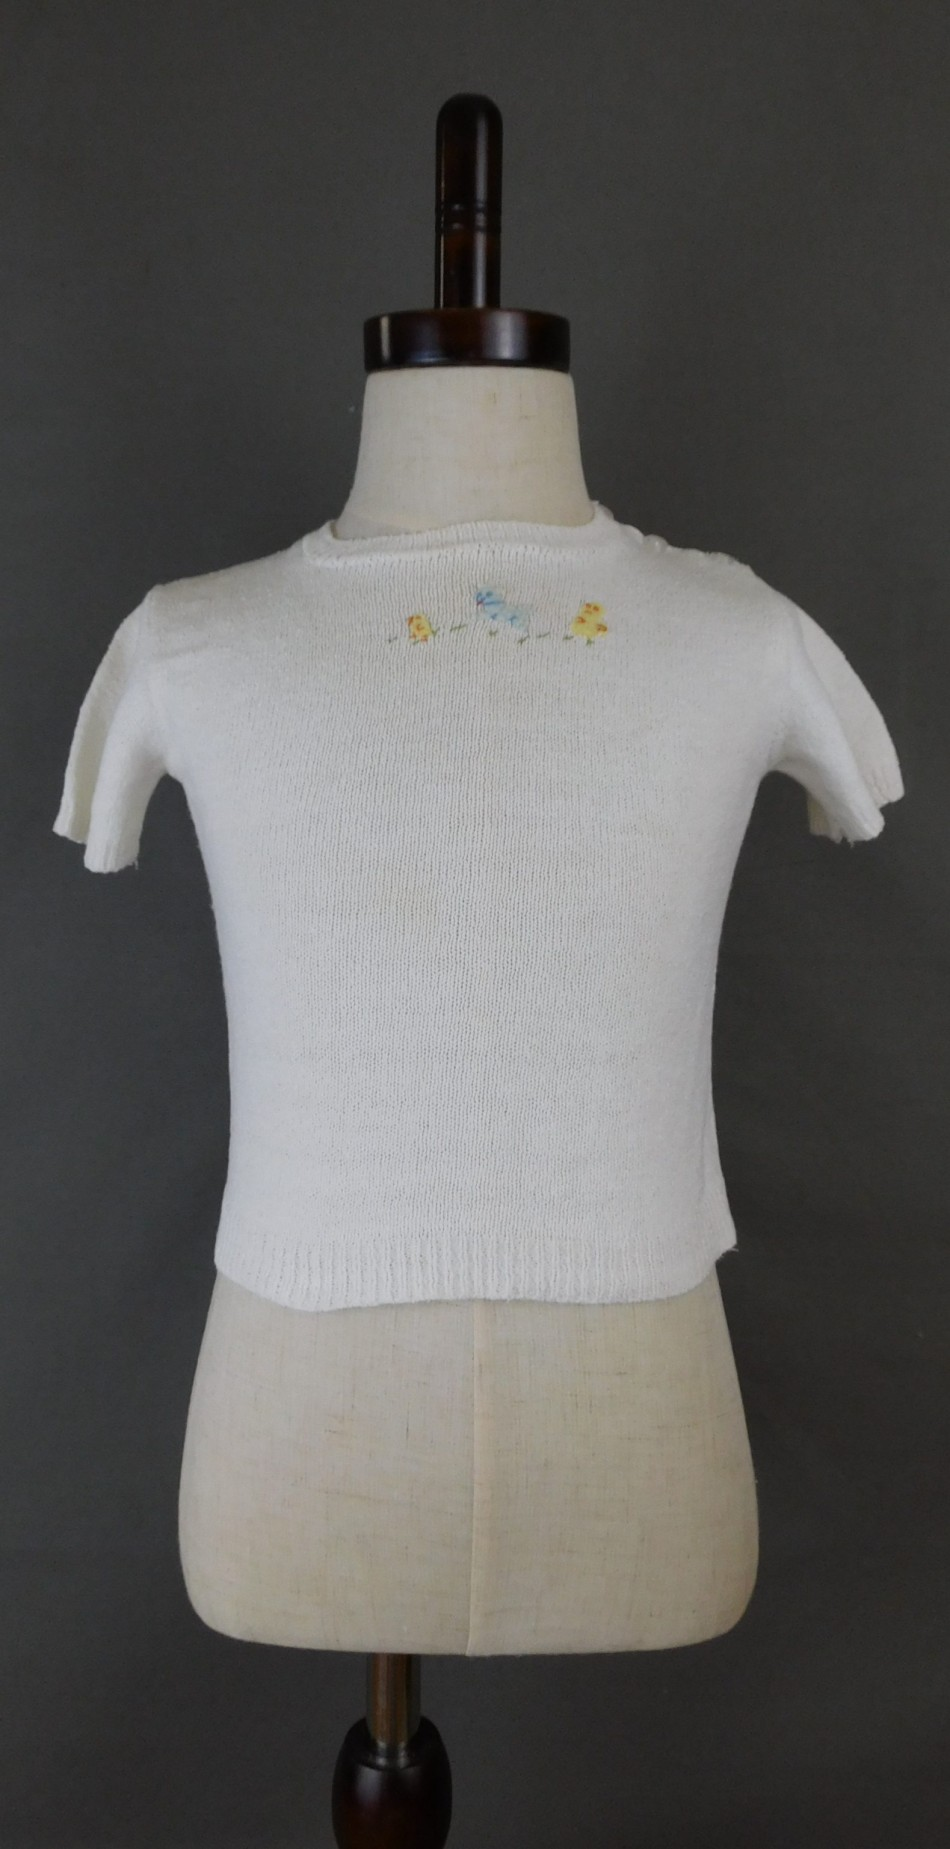 Vintage Baby Sweater, White Cotton Knit 1930s 1940s with Ducks & Lamb